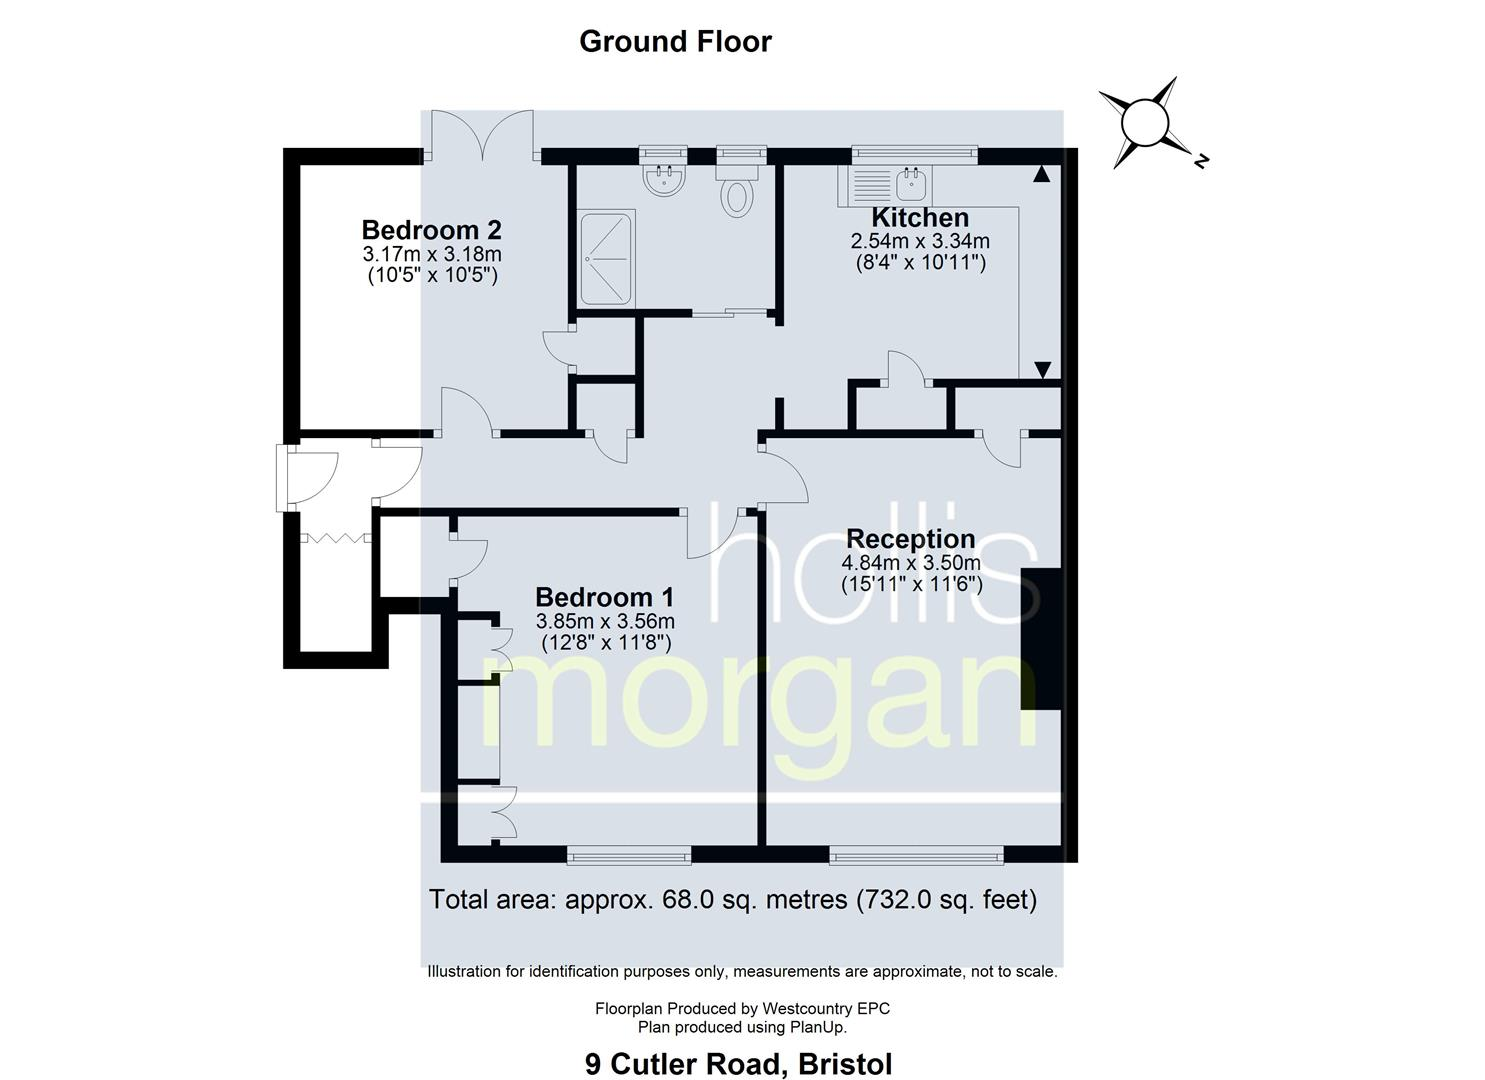 Floorplans For 2 BED FLAT - REDUCED PRICE FOR AUCTION